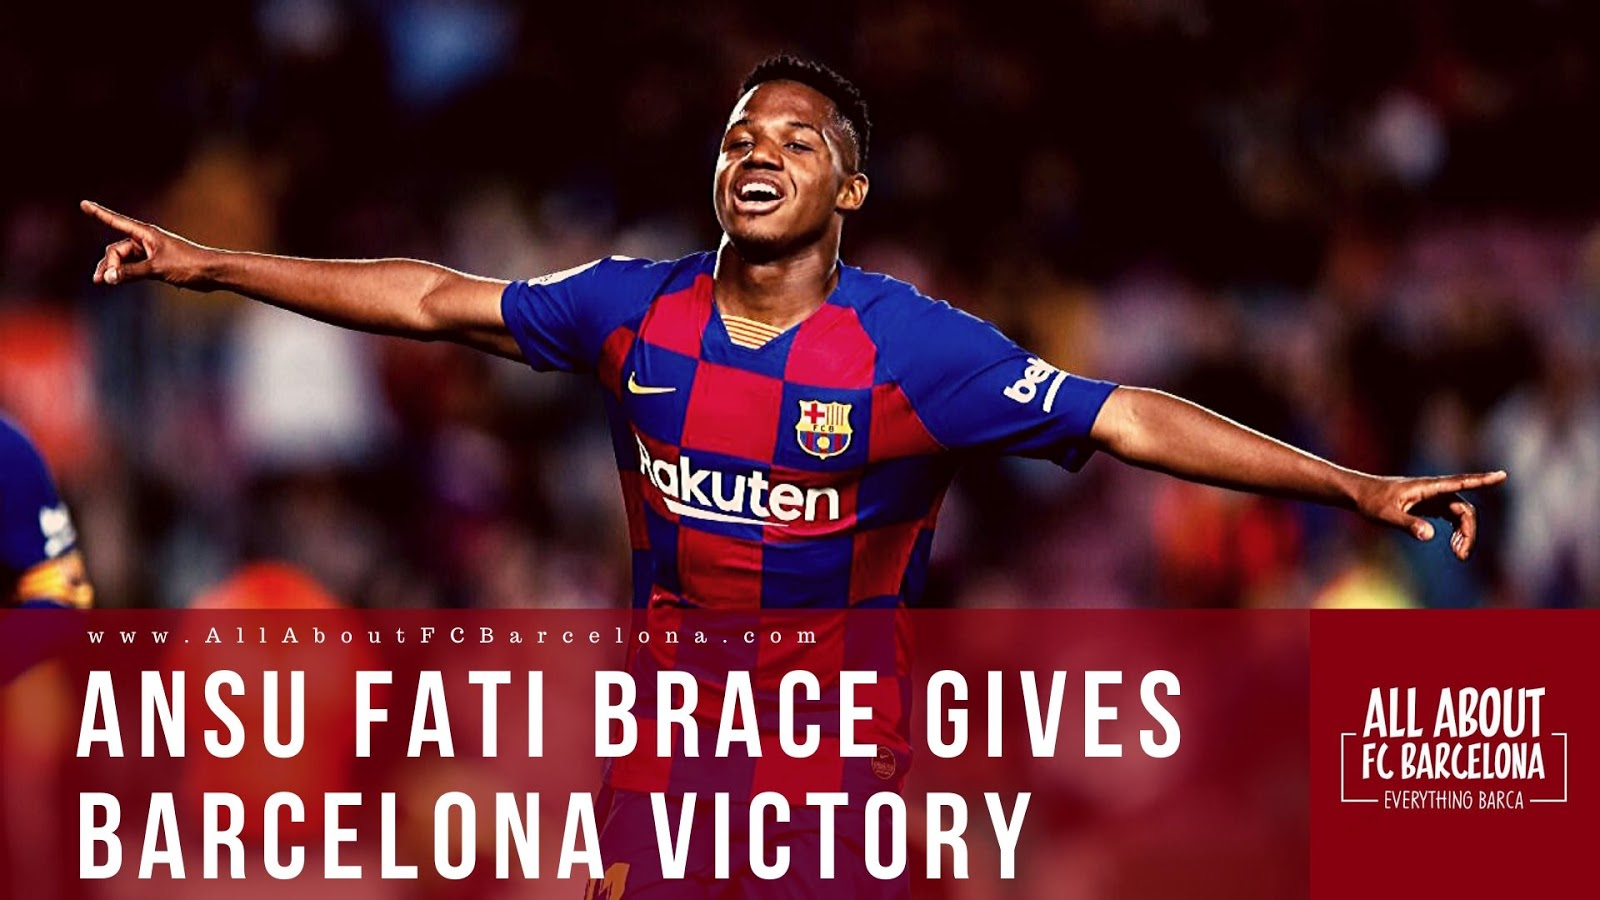 Ansu Fati Brace Secures Barcelona an Essential Victory that inspires Hope #AnsuFati #FCBarcelona